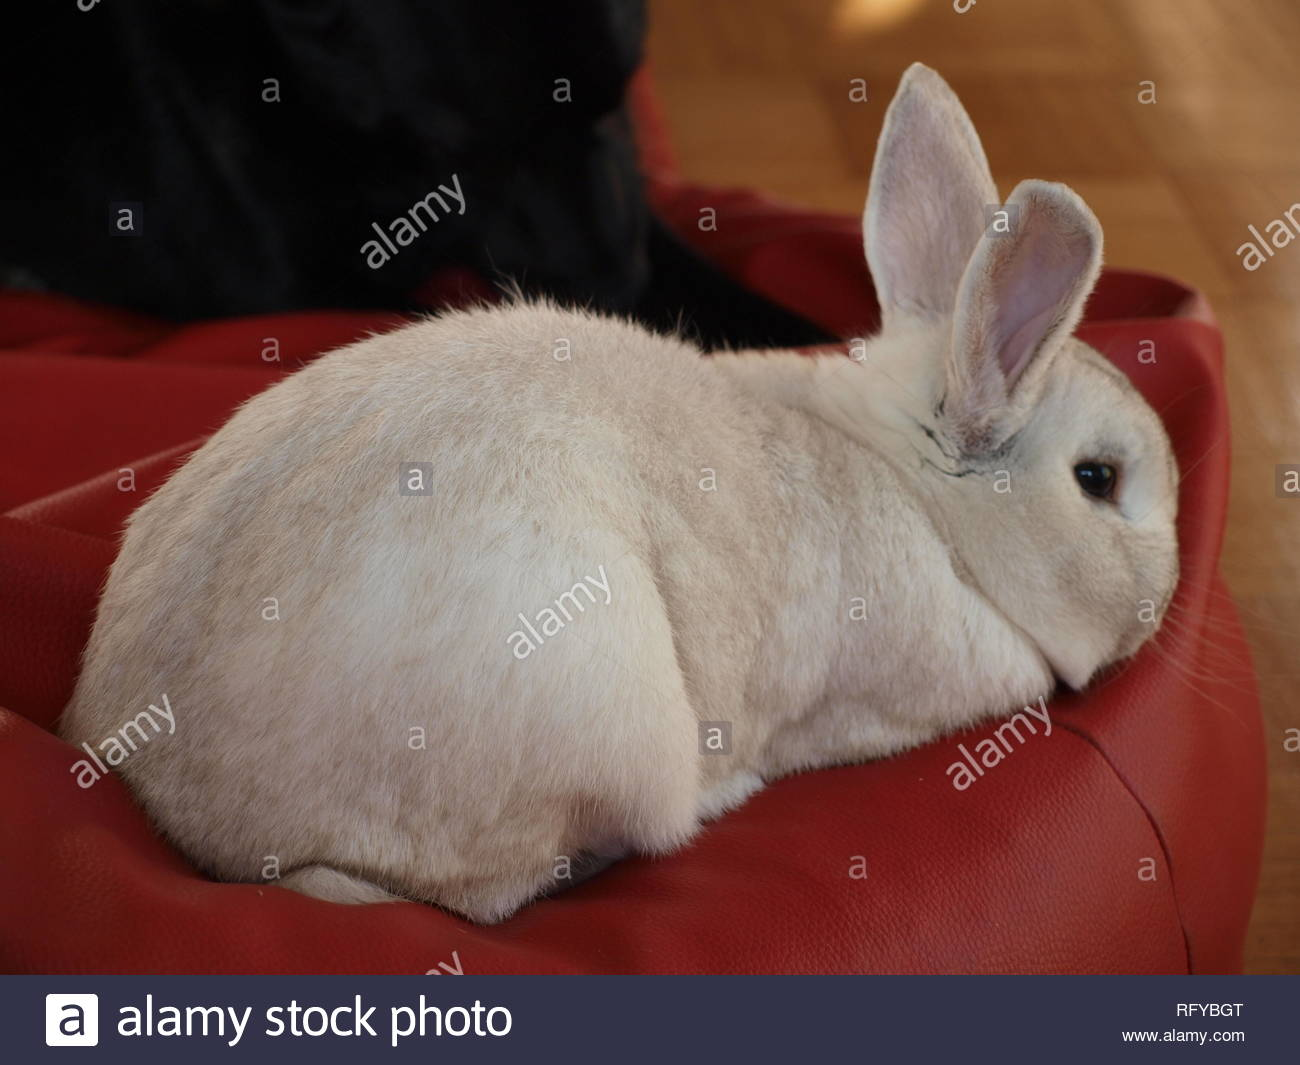 My dog has found the rabbit in the meadow - Stock Image